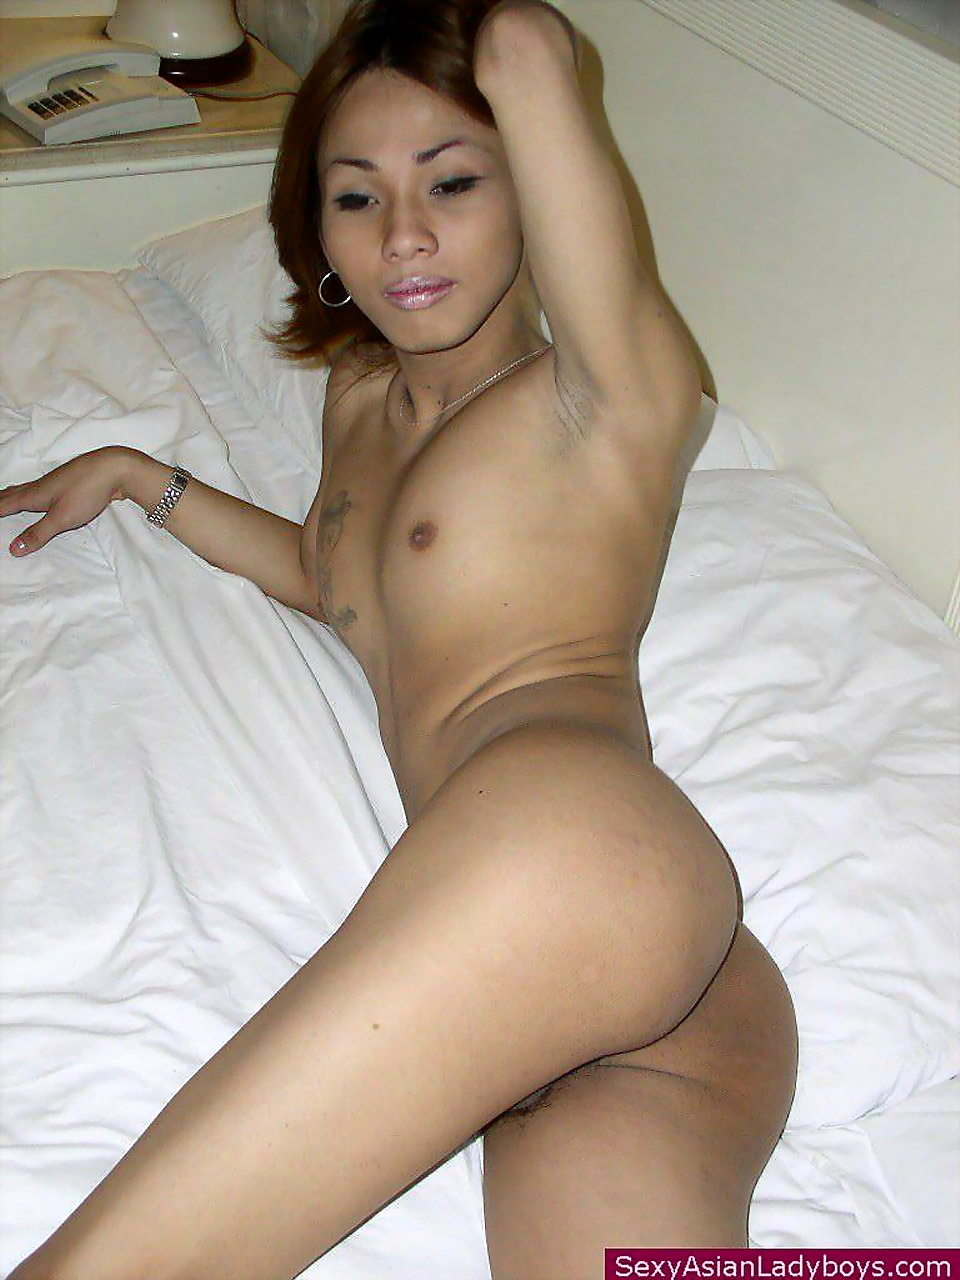 Slender T-Girl Stripping On His Bed For Our Voyeuristic Pleasure